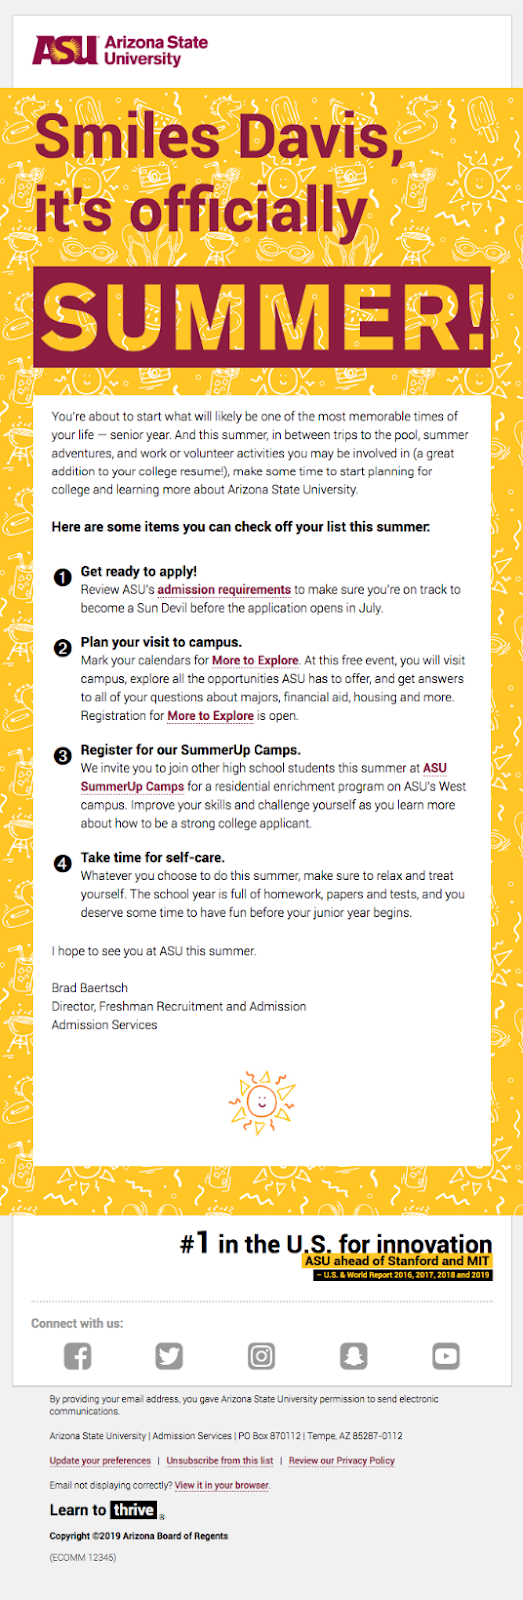 Arizona State University (ASU) uses segmentation to identify interested high school seniors.